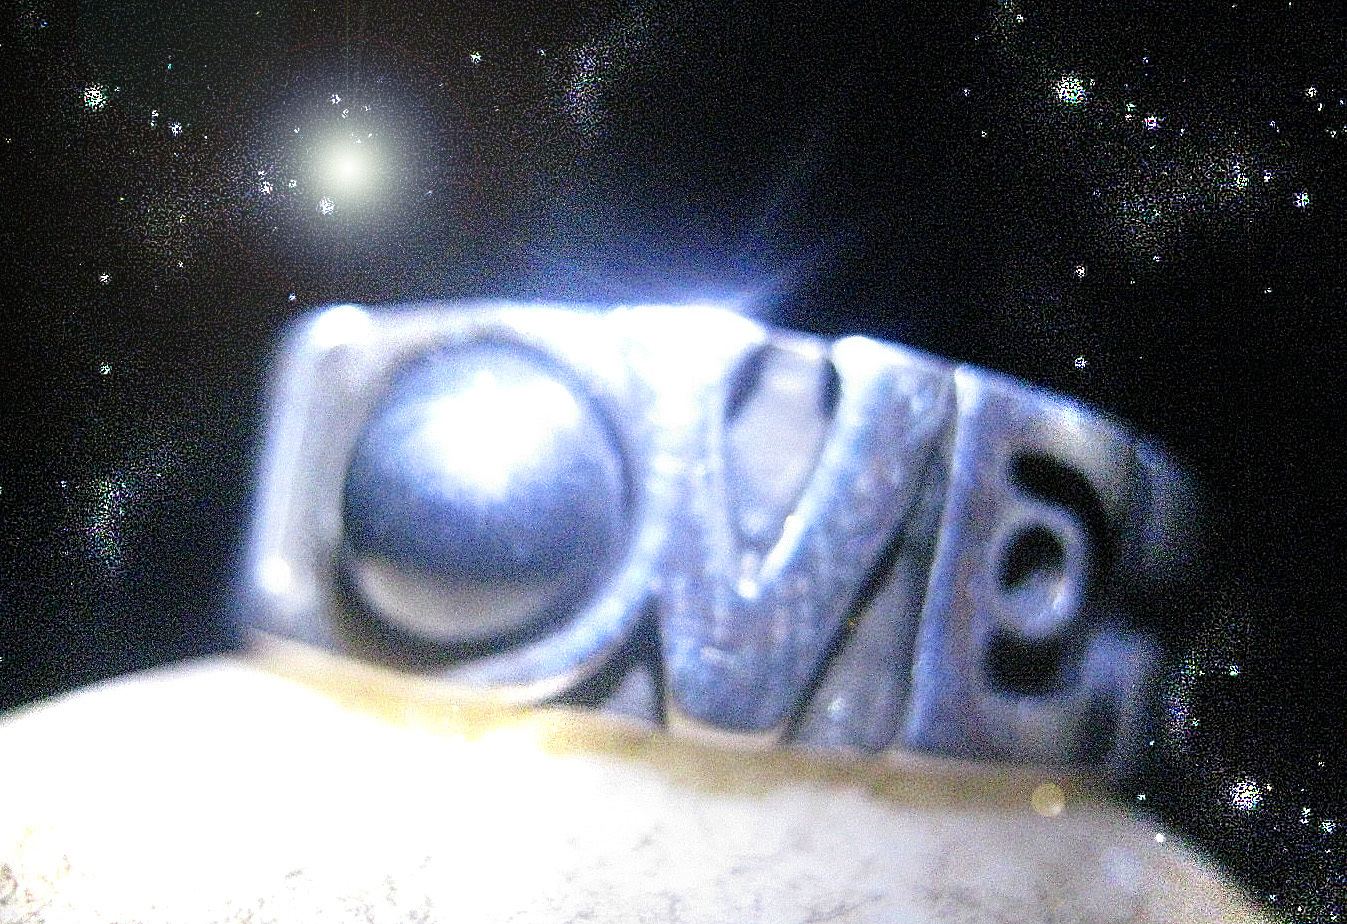 Primary image for HAUNTED RING TOUCH OF ULTIMATE LOVE ENHANCEMENT RARE POWER MAGICK OOAK MAGICK